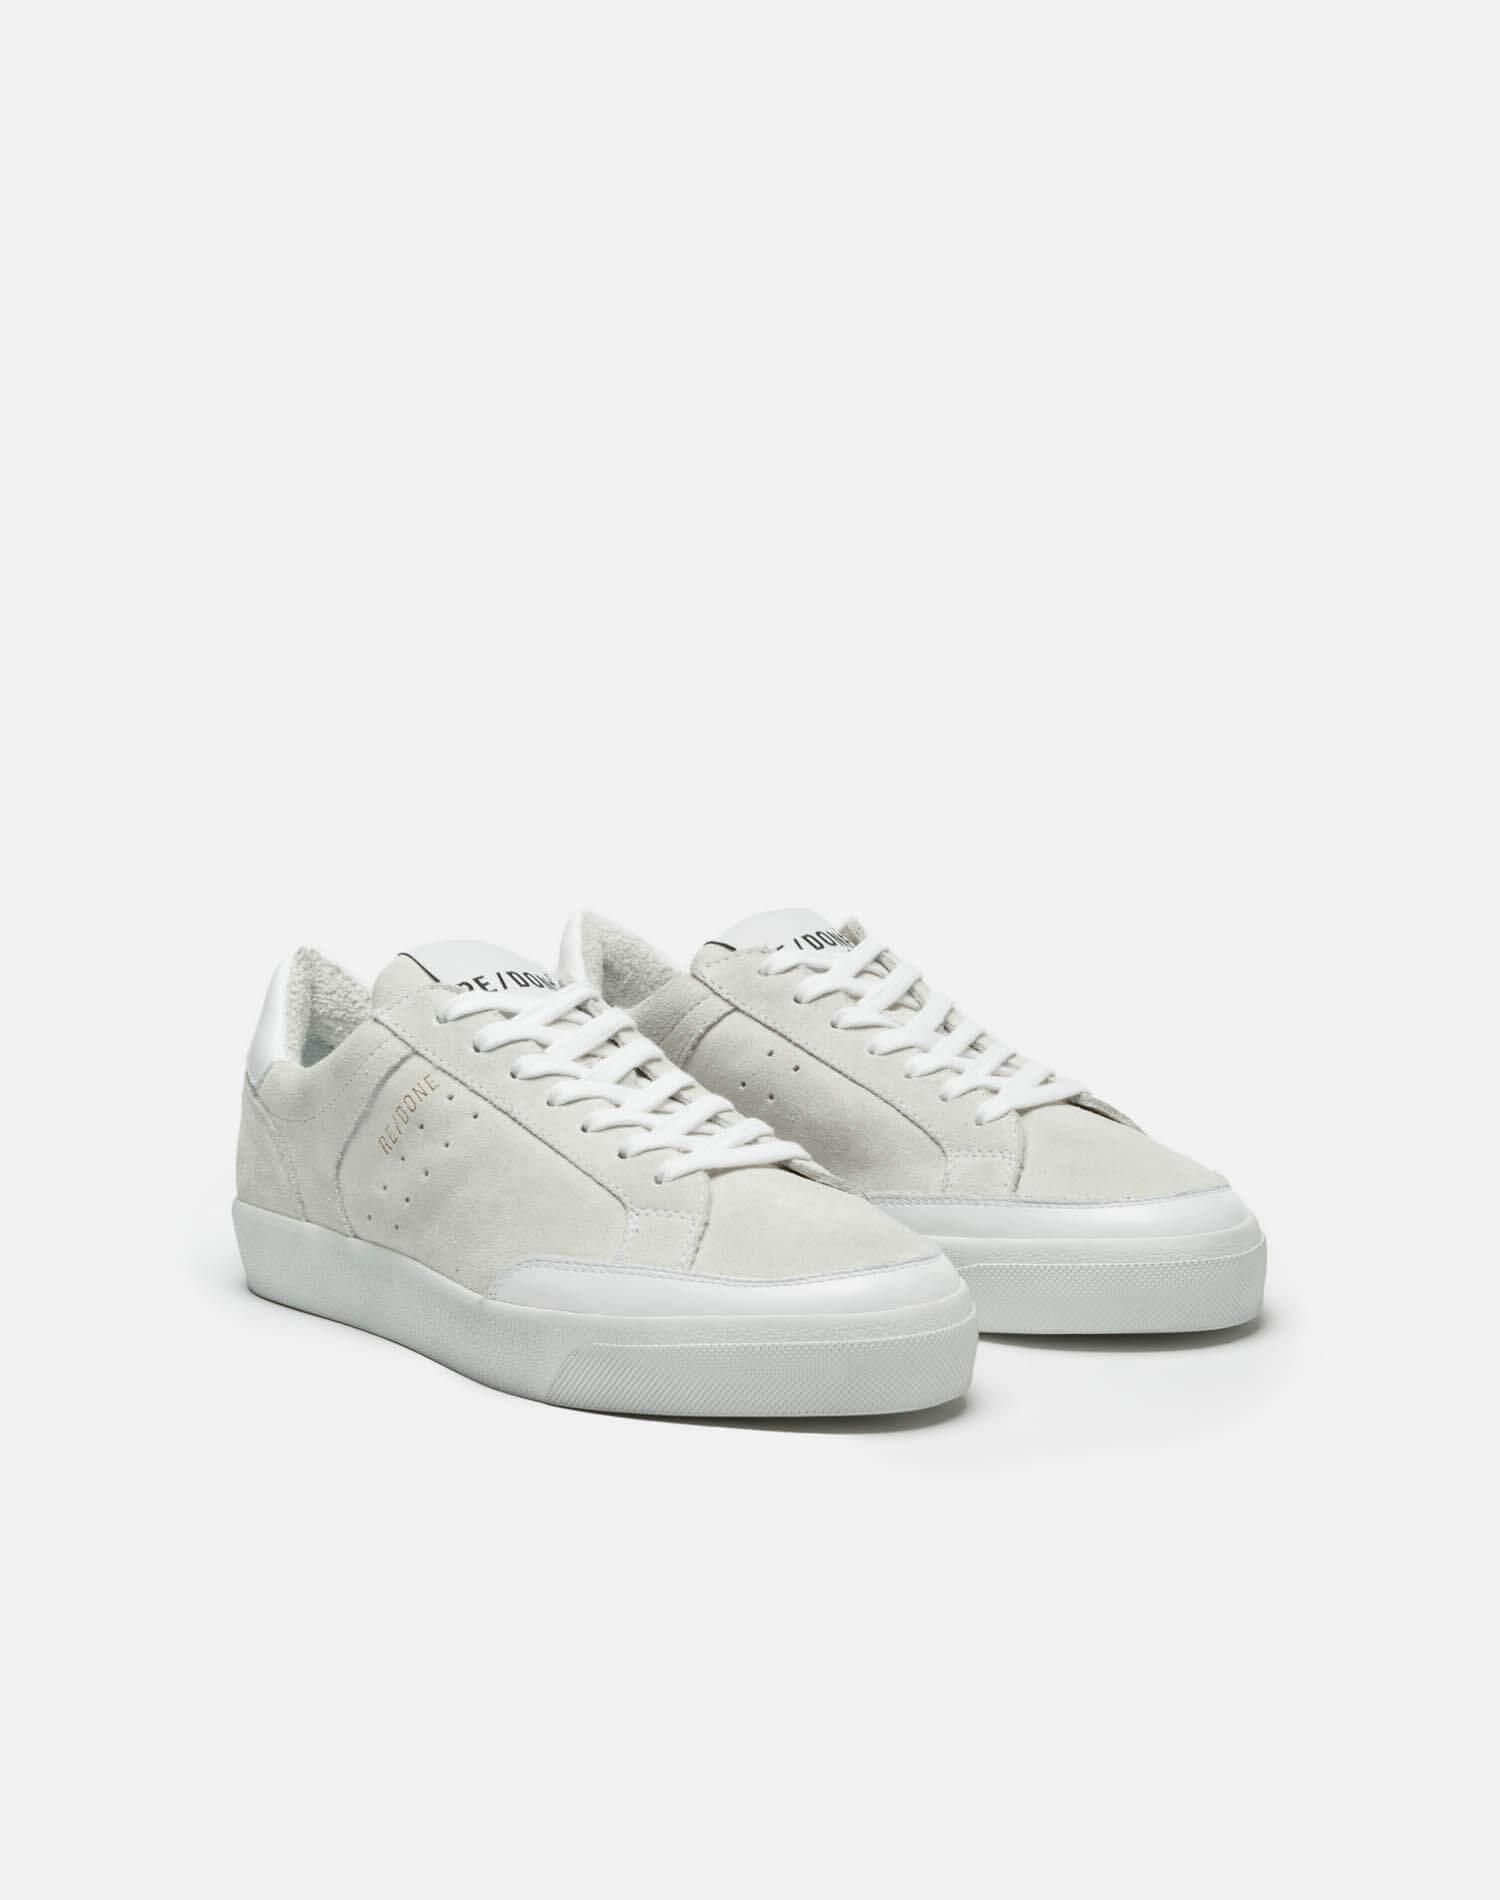 90s Skate Shoe - White Suede 1